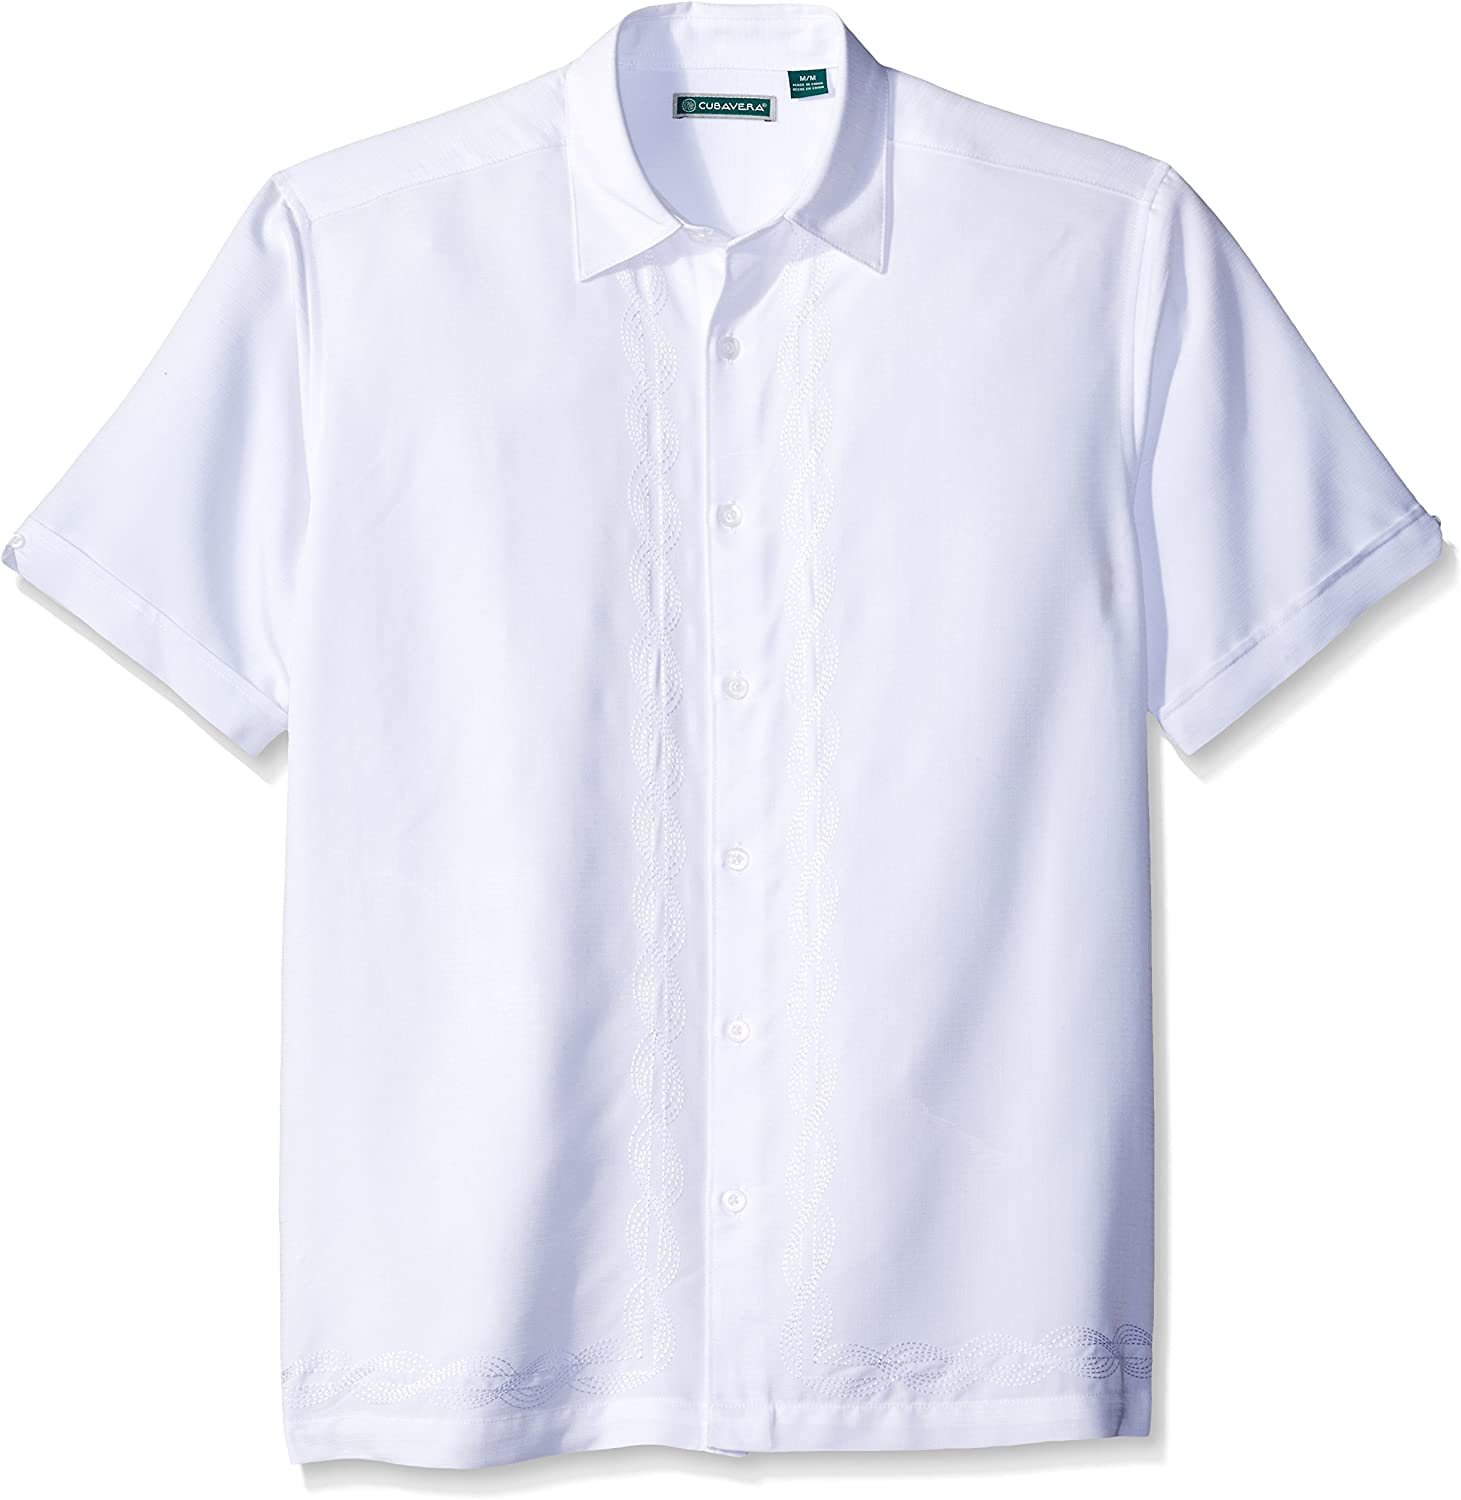 Cubavera Mens Short Sleeve Polyester Shirt with Two Top Pockets and Tuck Details